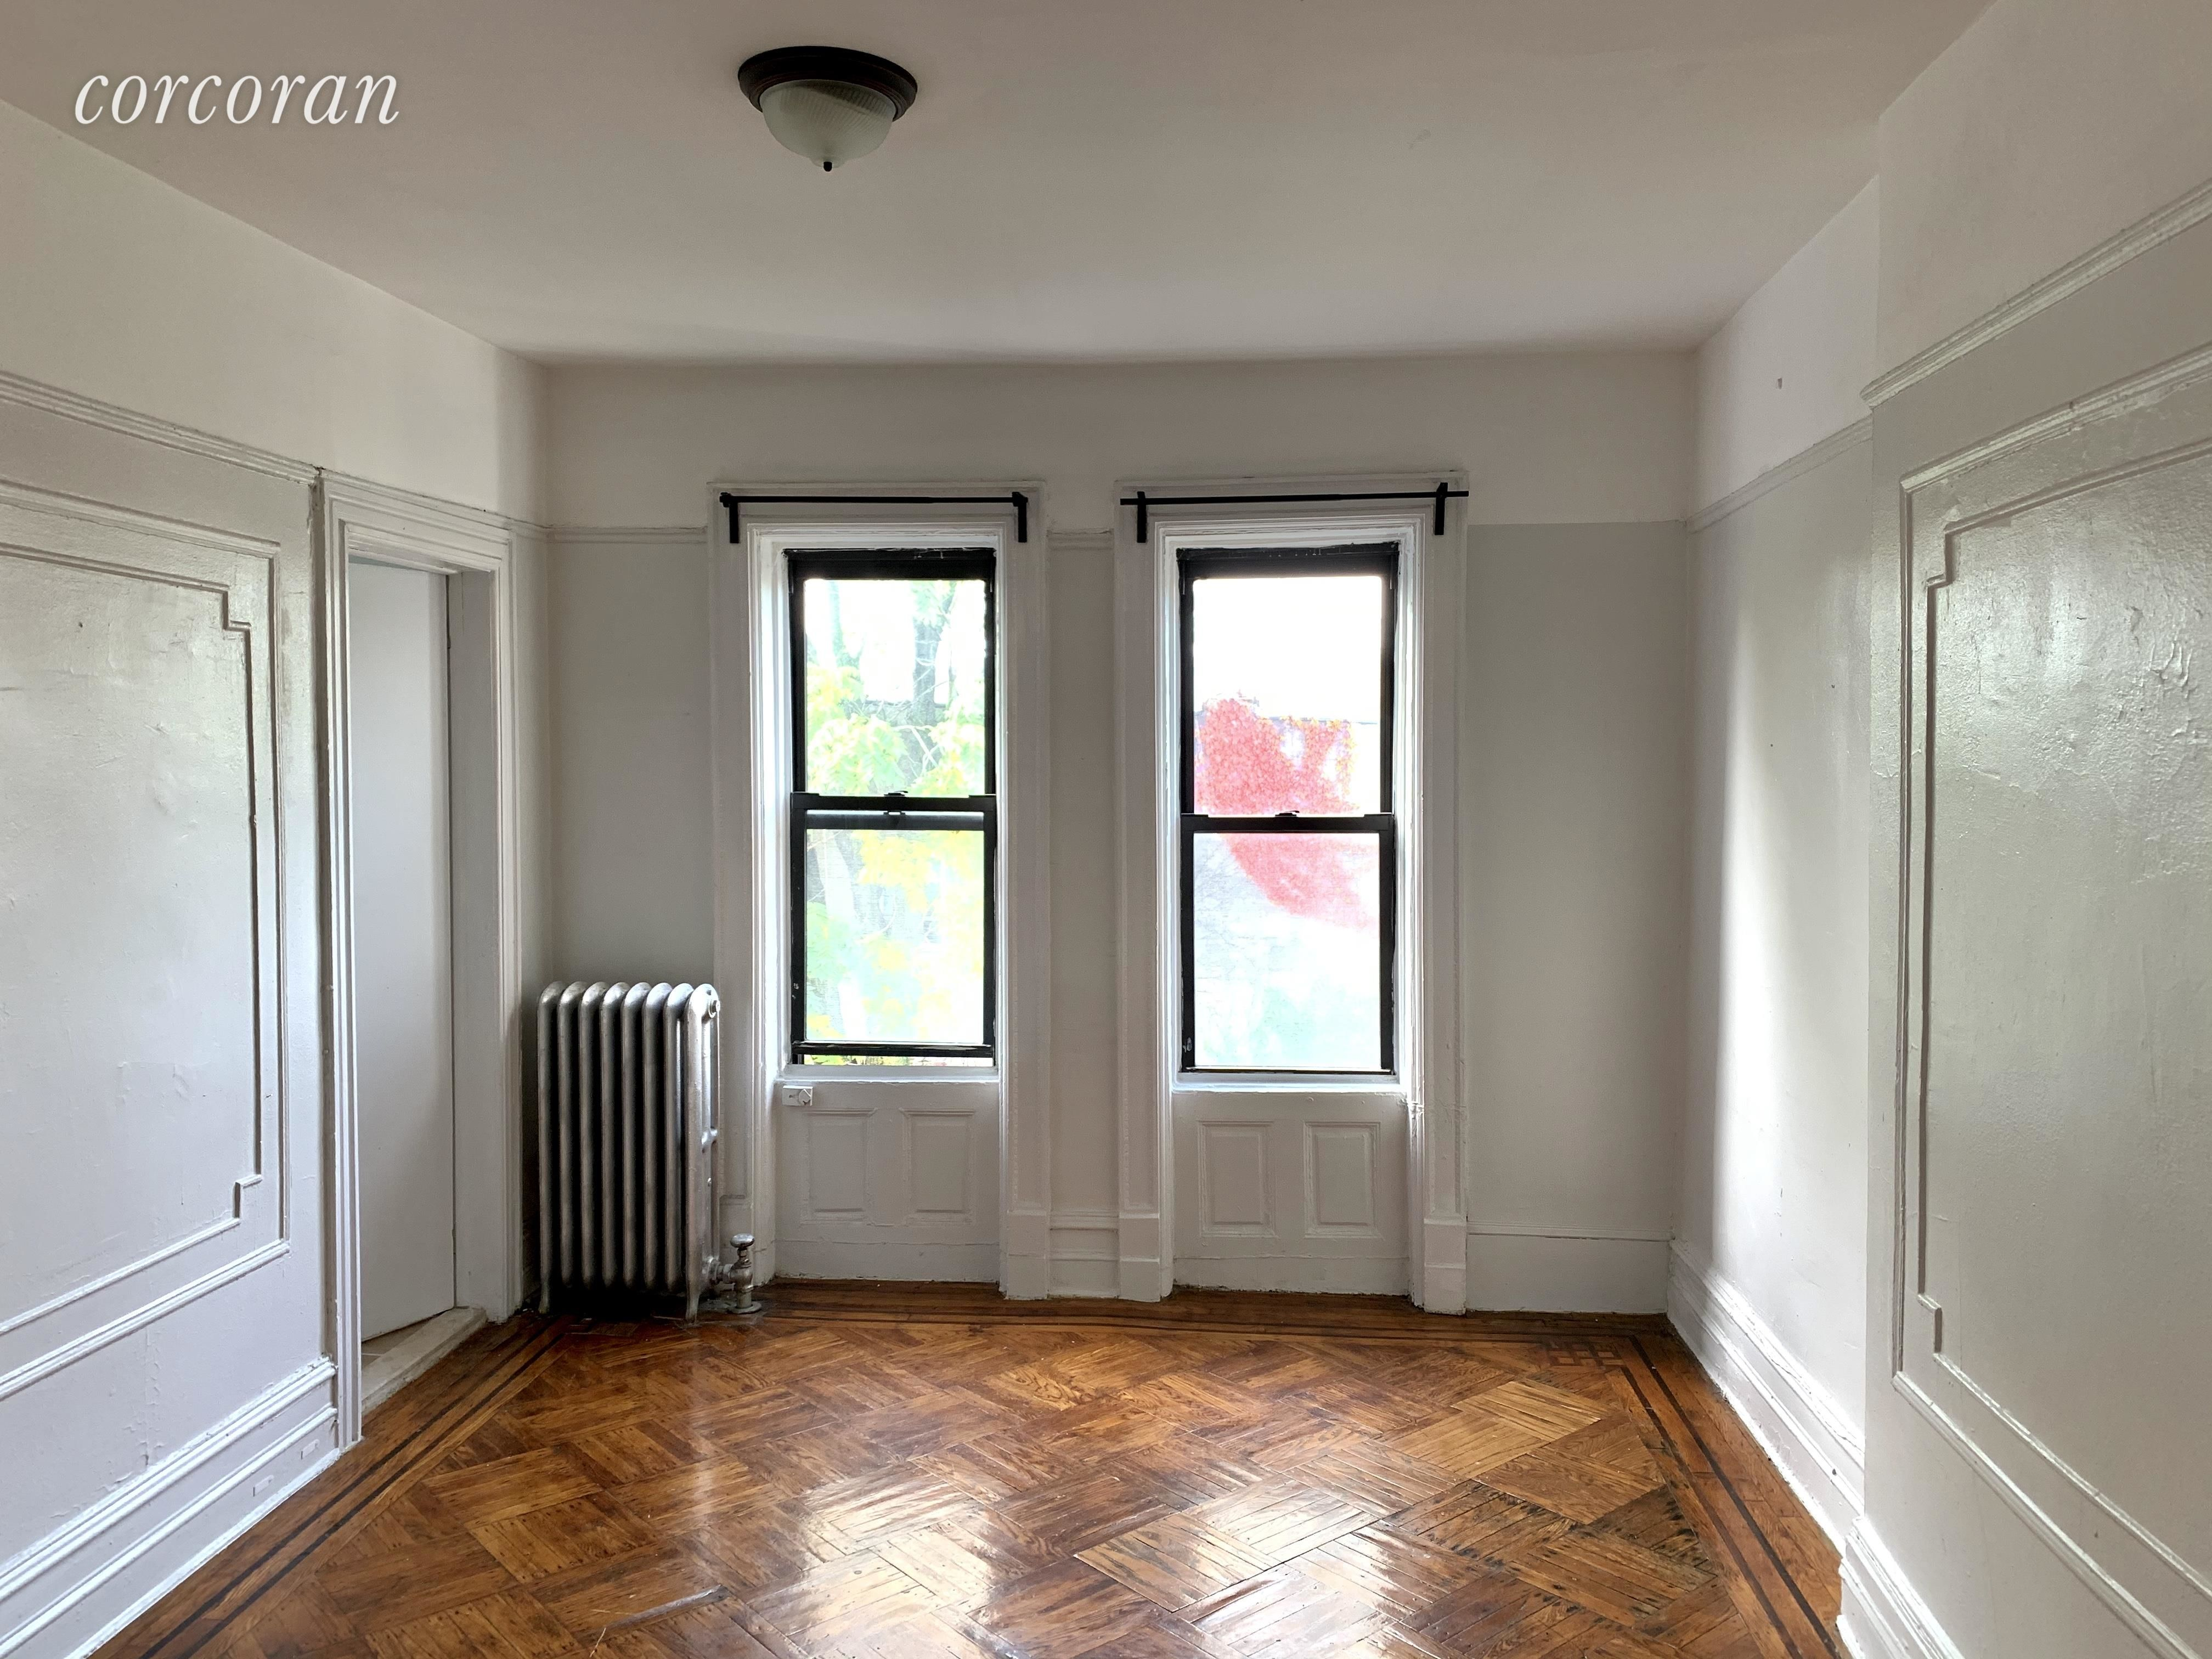 298 New York Ave, # 2 Photo 6 - CORCORAN-5927046